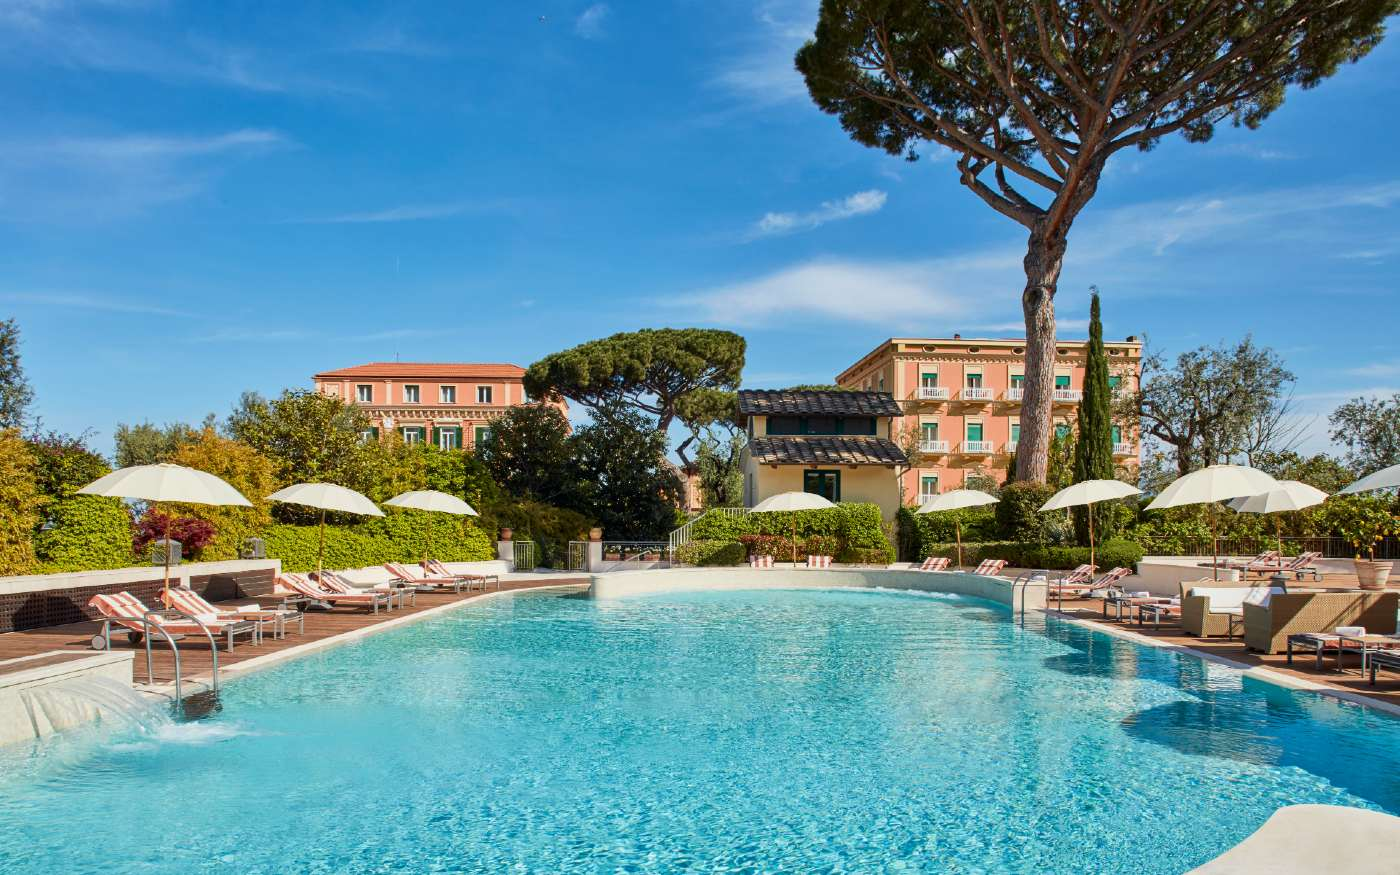 Pool in from of the Grand Hotel Excelsior Vittoria